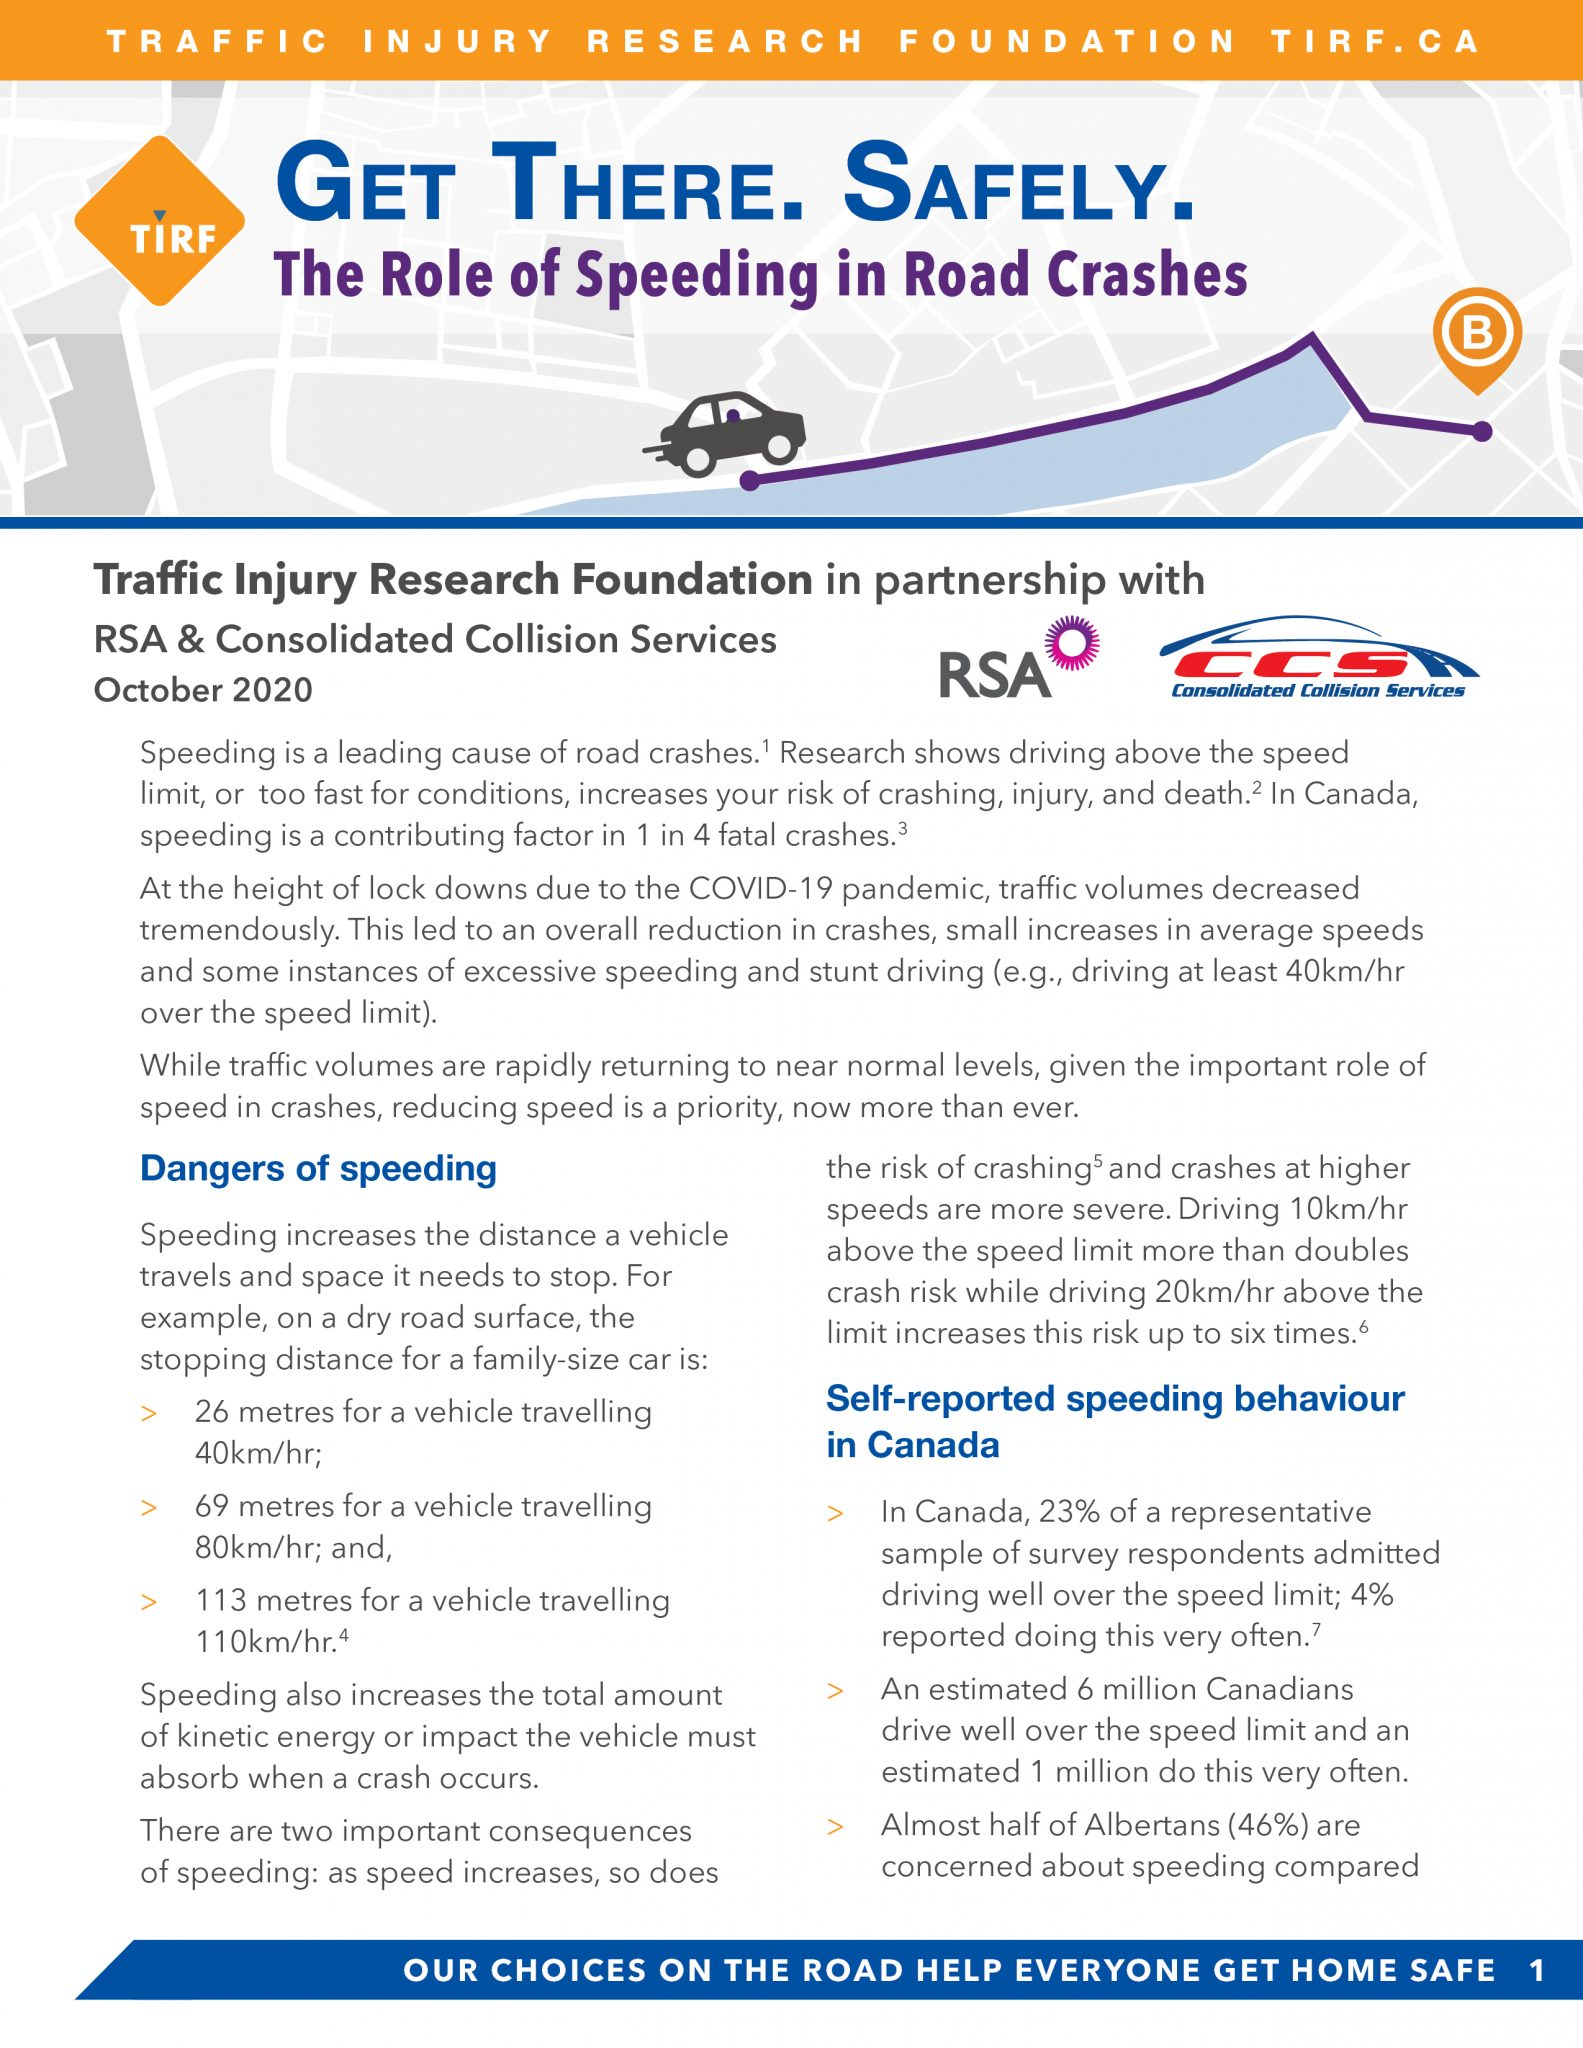 The Role of Speeding in Road Crashes